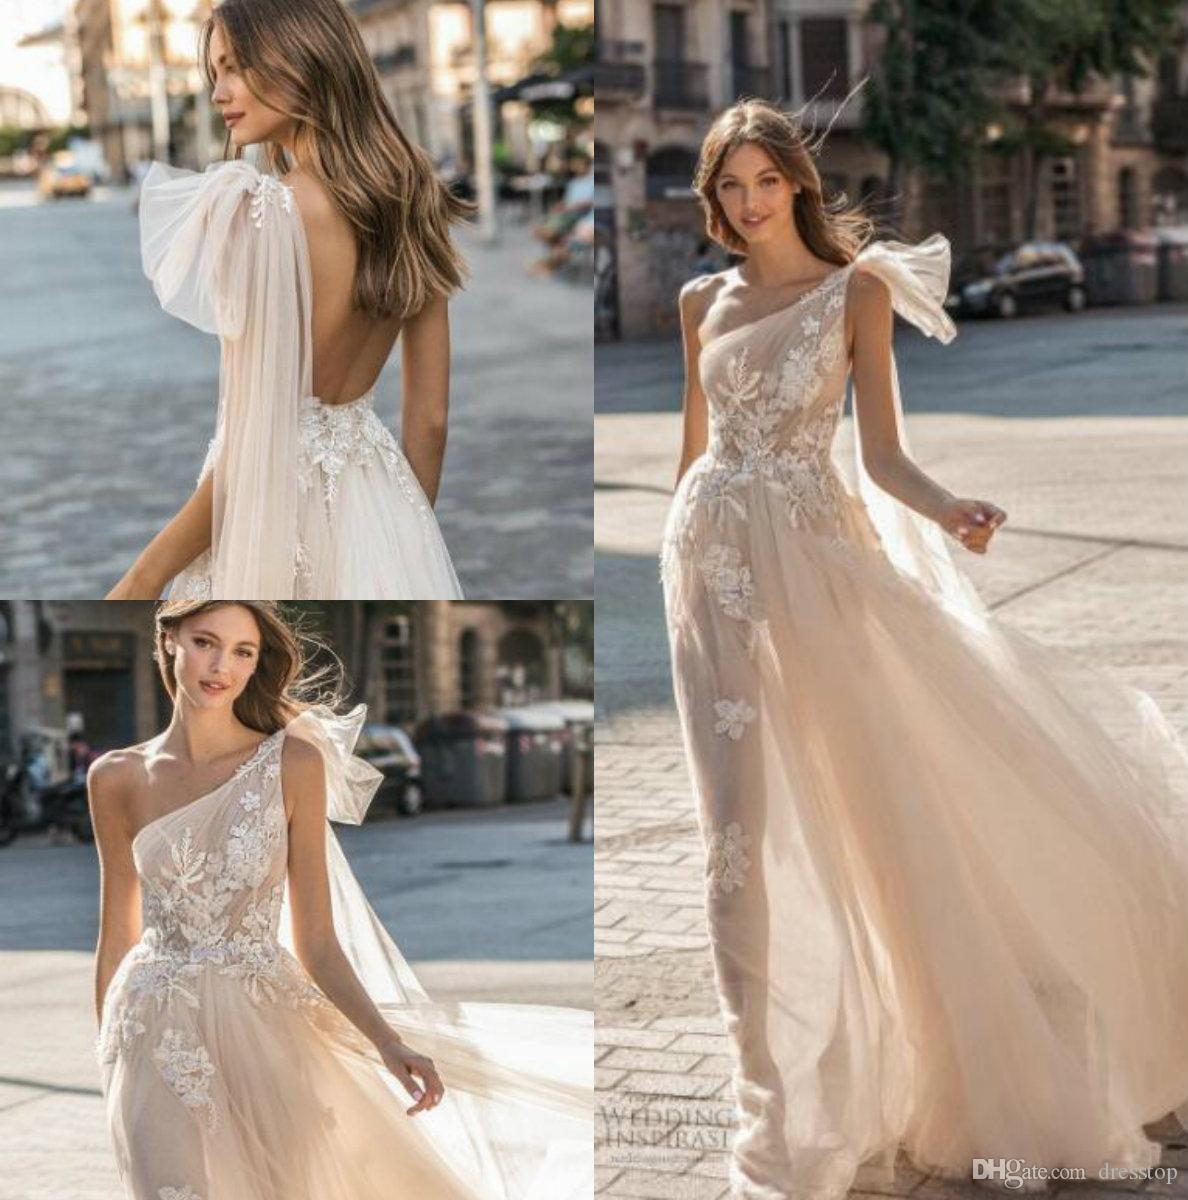 One Shoulder Wedding Dress.Discount Muse By Berta 2019 Wedding Dresses One Shoulder Backless Bridal Gown Appliqued A Line Beach Boho Simple See Through Wedding Dress Luxurious